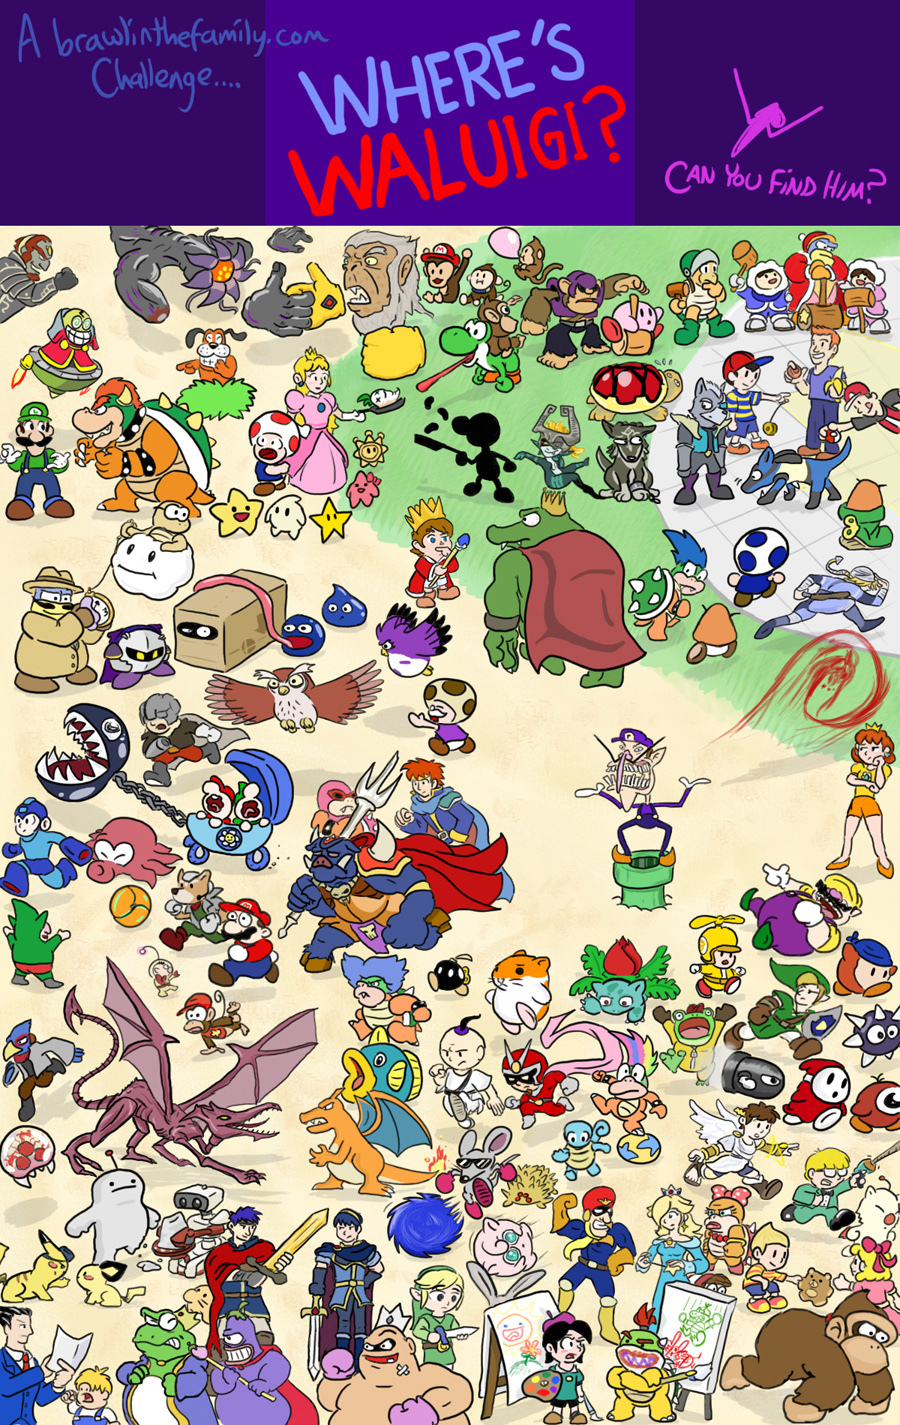 190 &#8211; Where&#8217;s Waluigi?